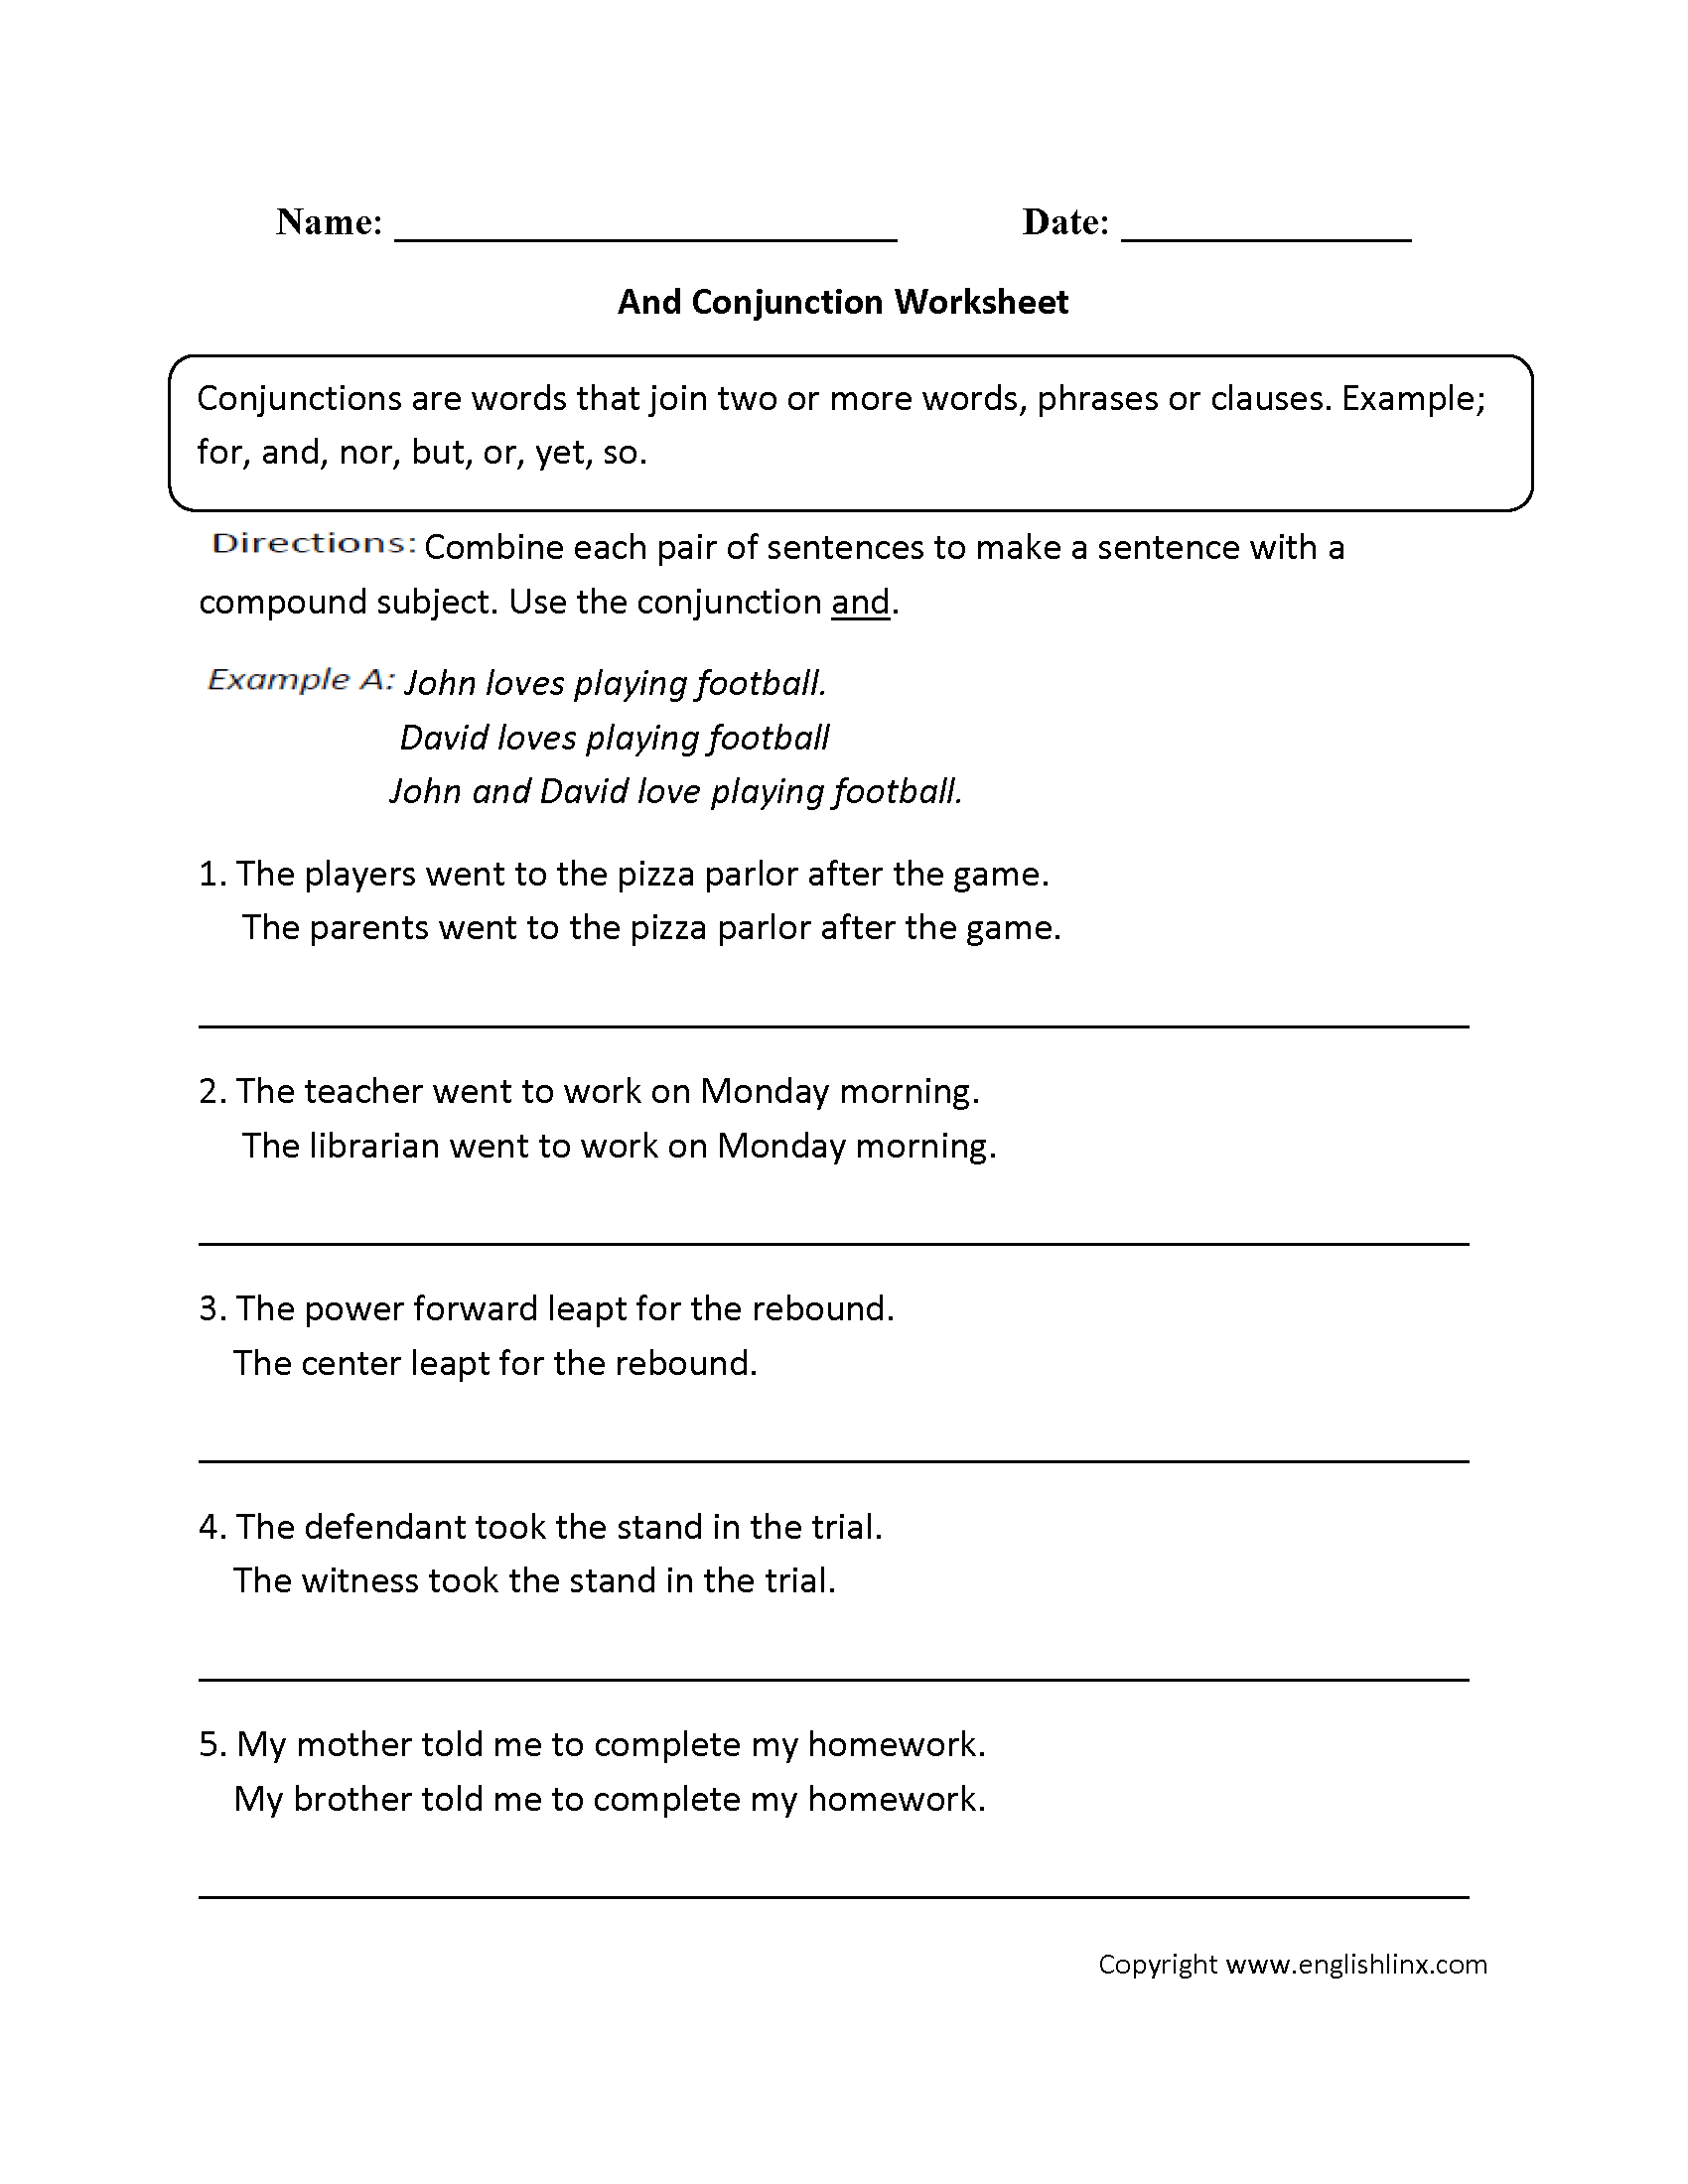 Free Worksheet Conjunction Worksheet paydayloansusaprh – Parts of Speech Worksheets Middle School